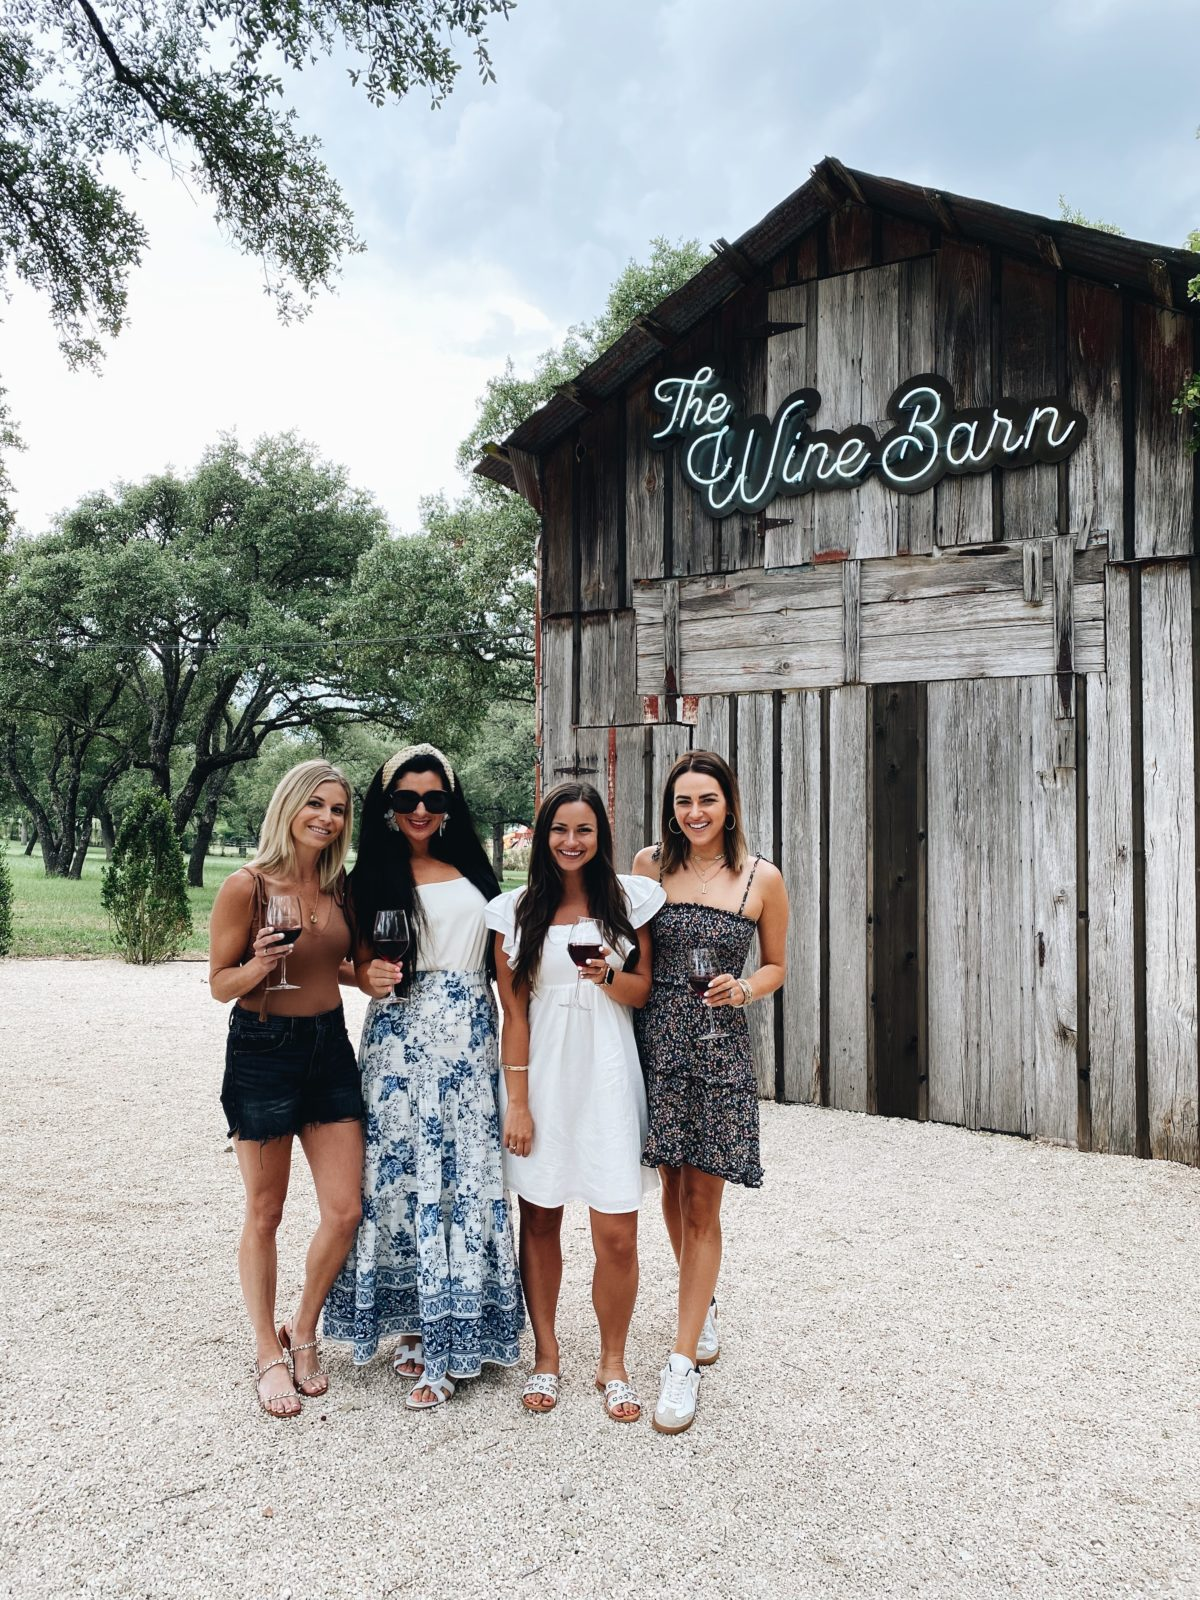 TEXAS WINE COUNTRY trip